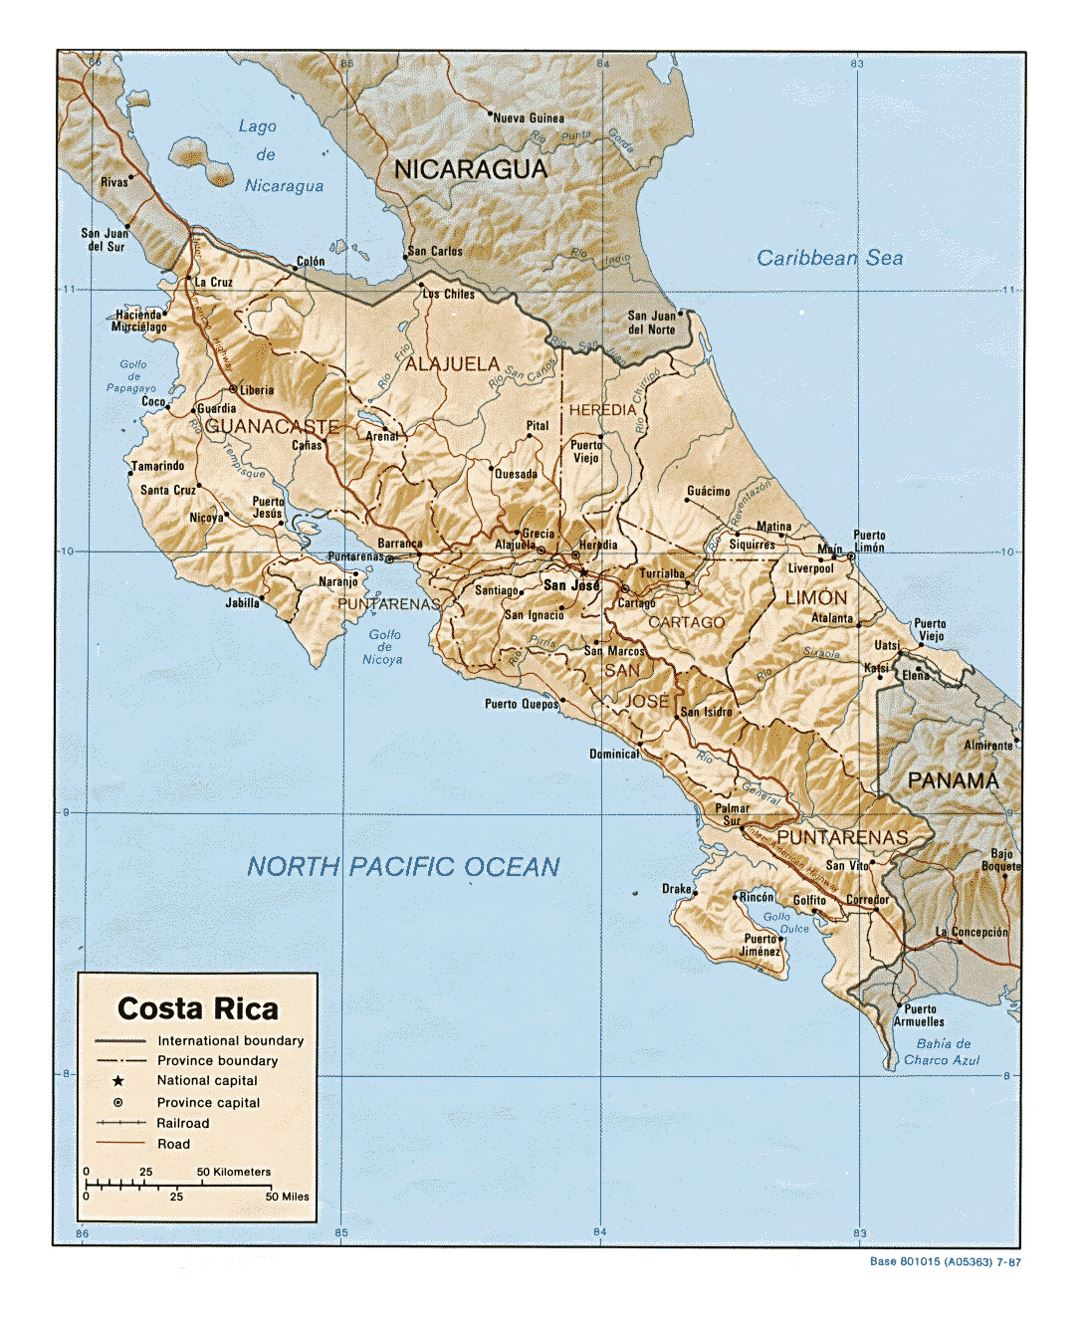 Detailed political and administrative map of Costa Rica with relief, roads, railroads and major cities - 1987